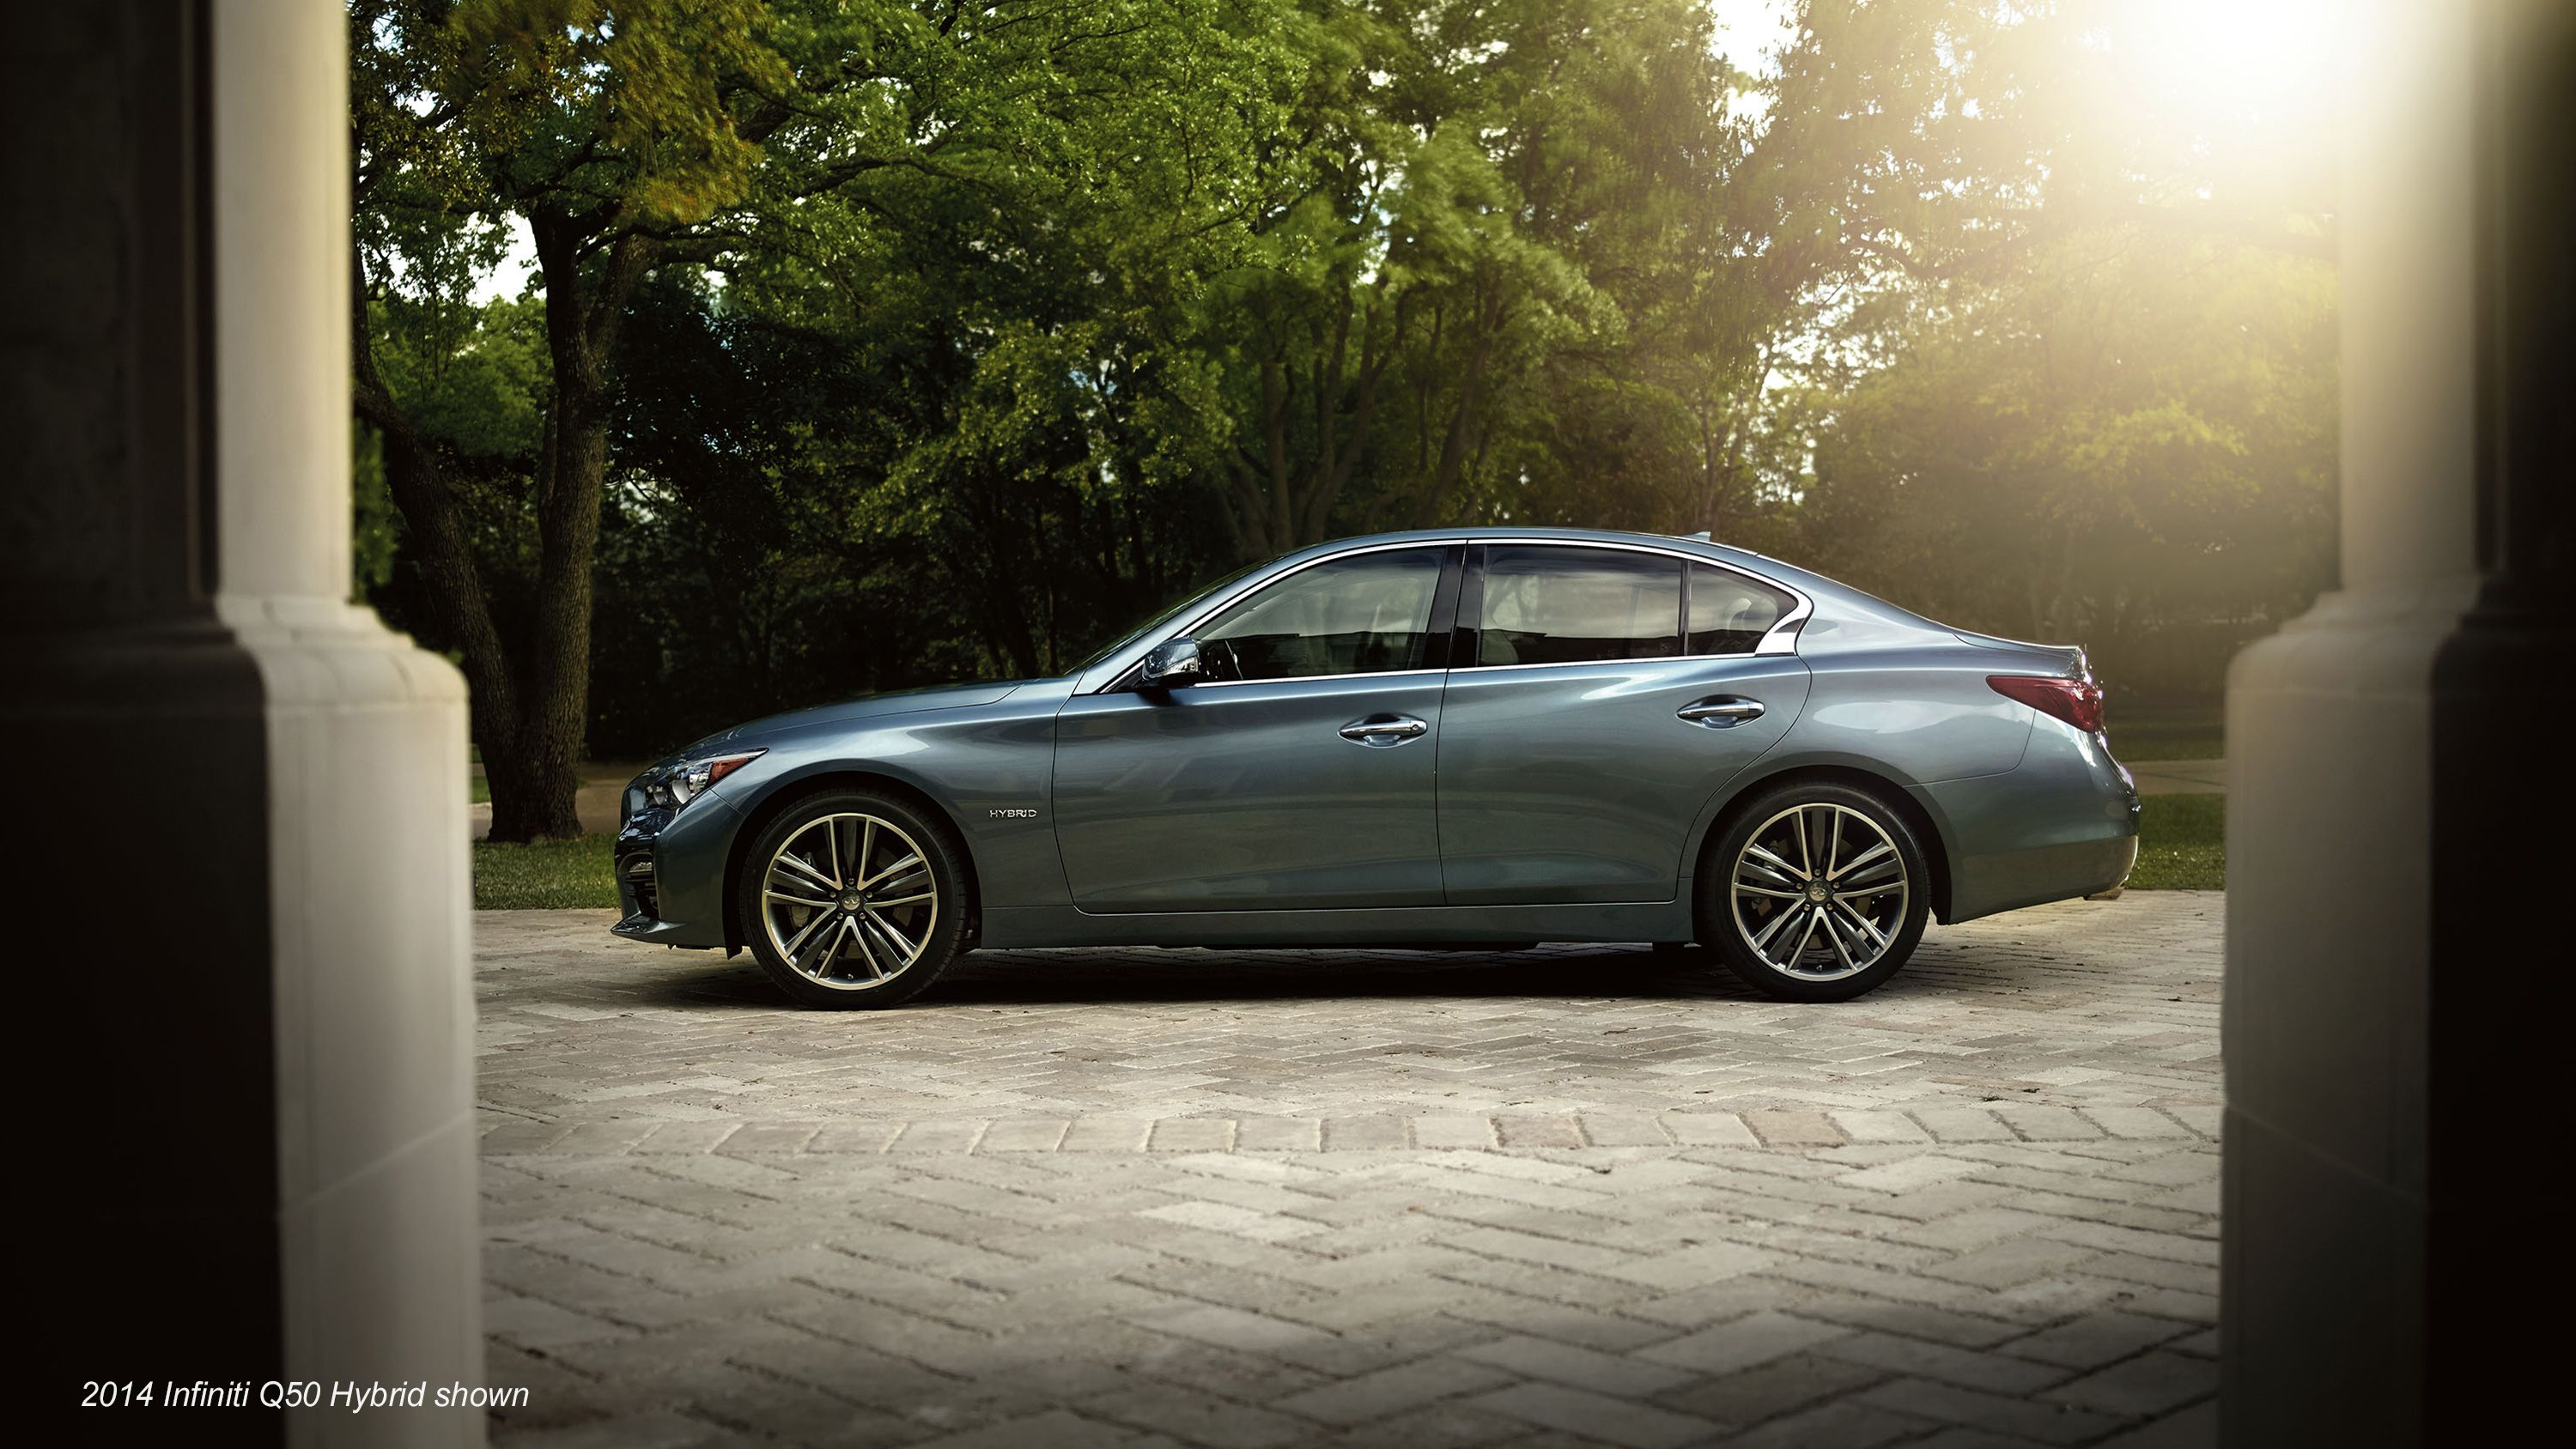 2015 infiniti q50 sedan exterior driver s side profile in graphite shadow highlighting 5 spoke